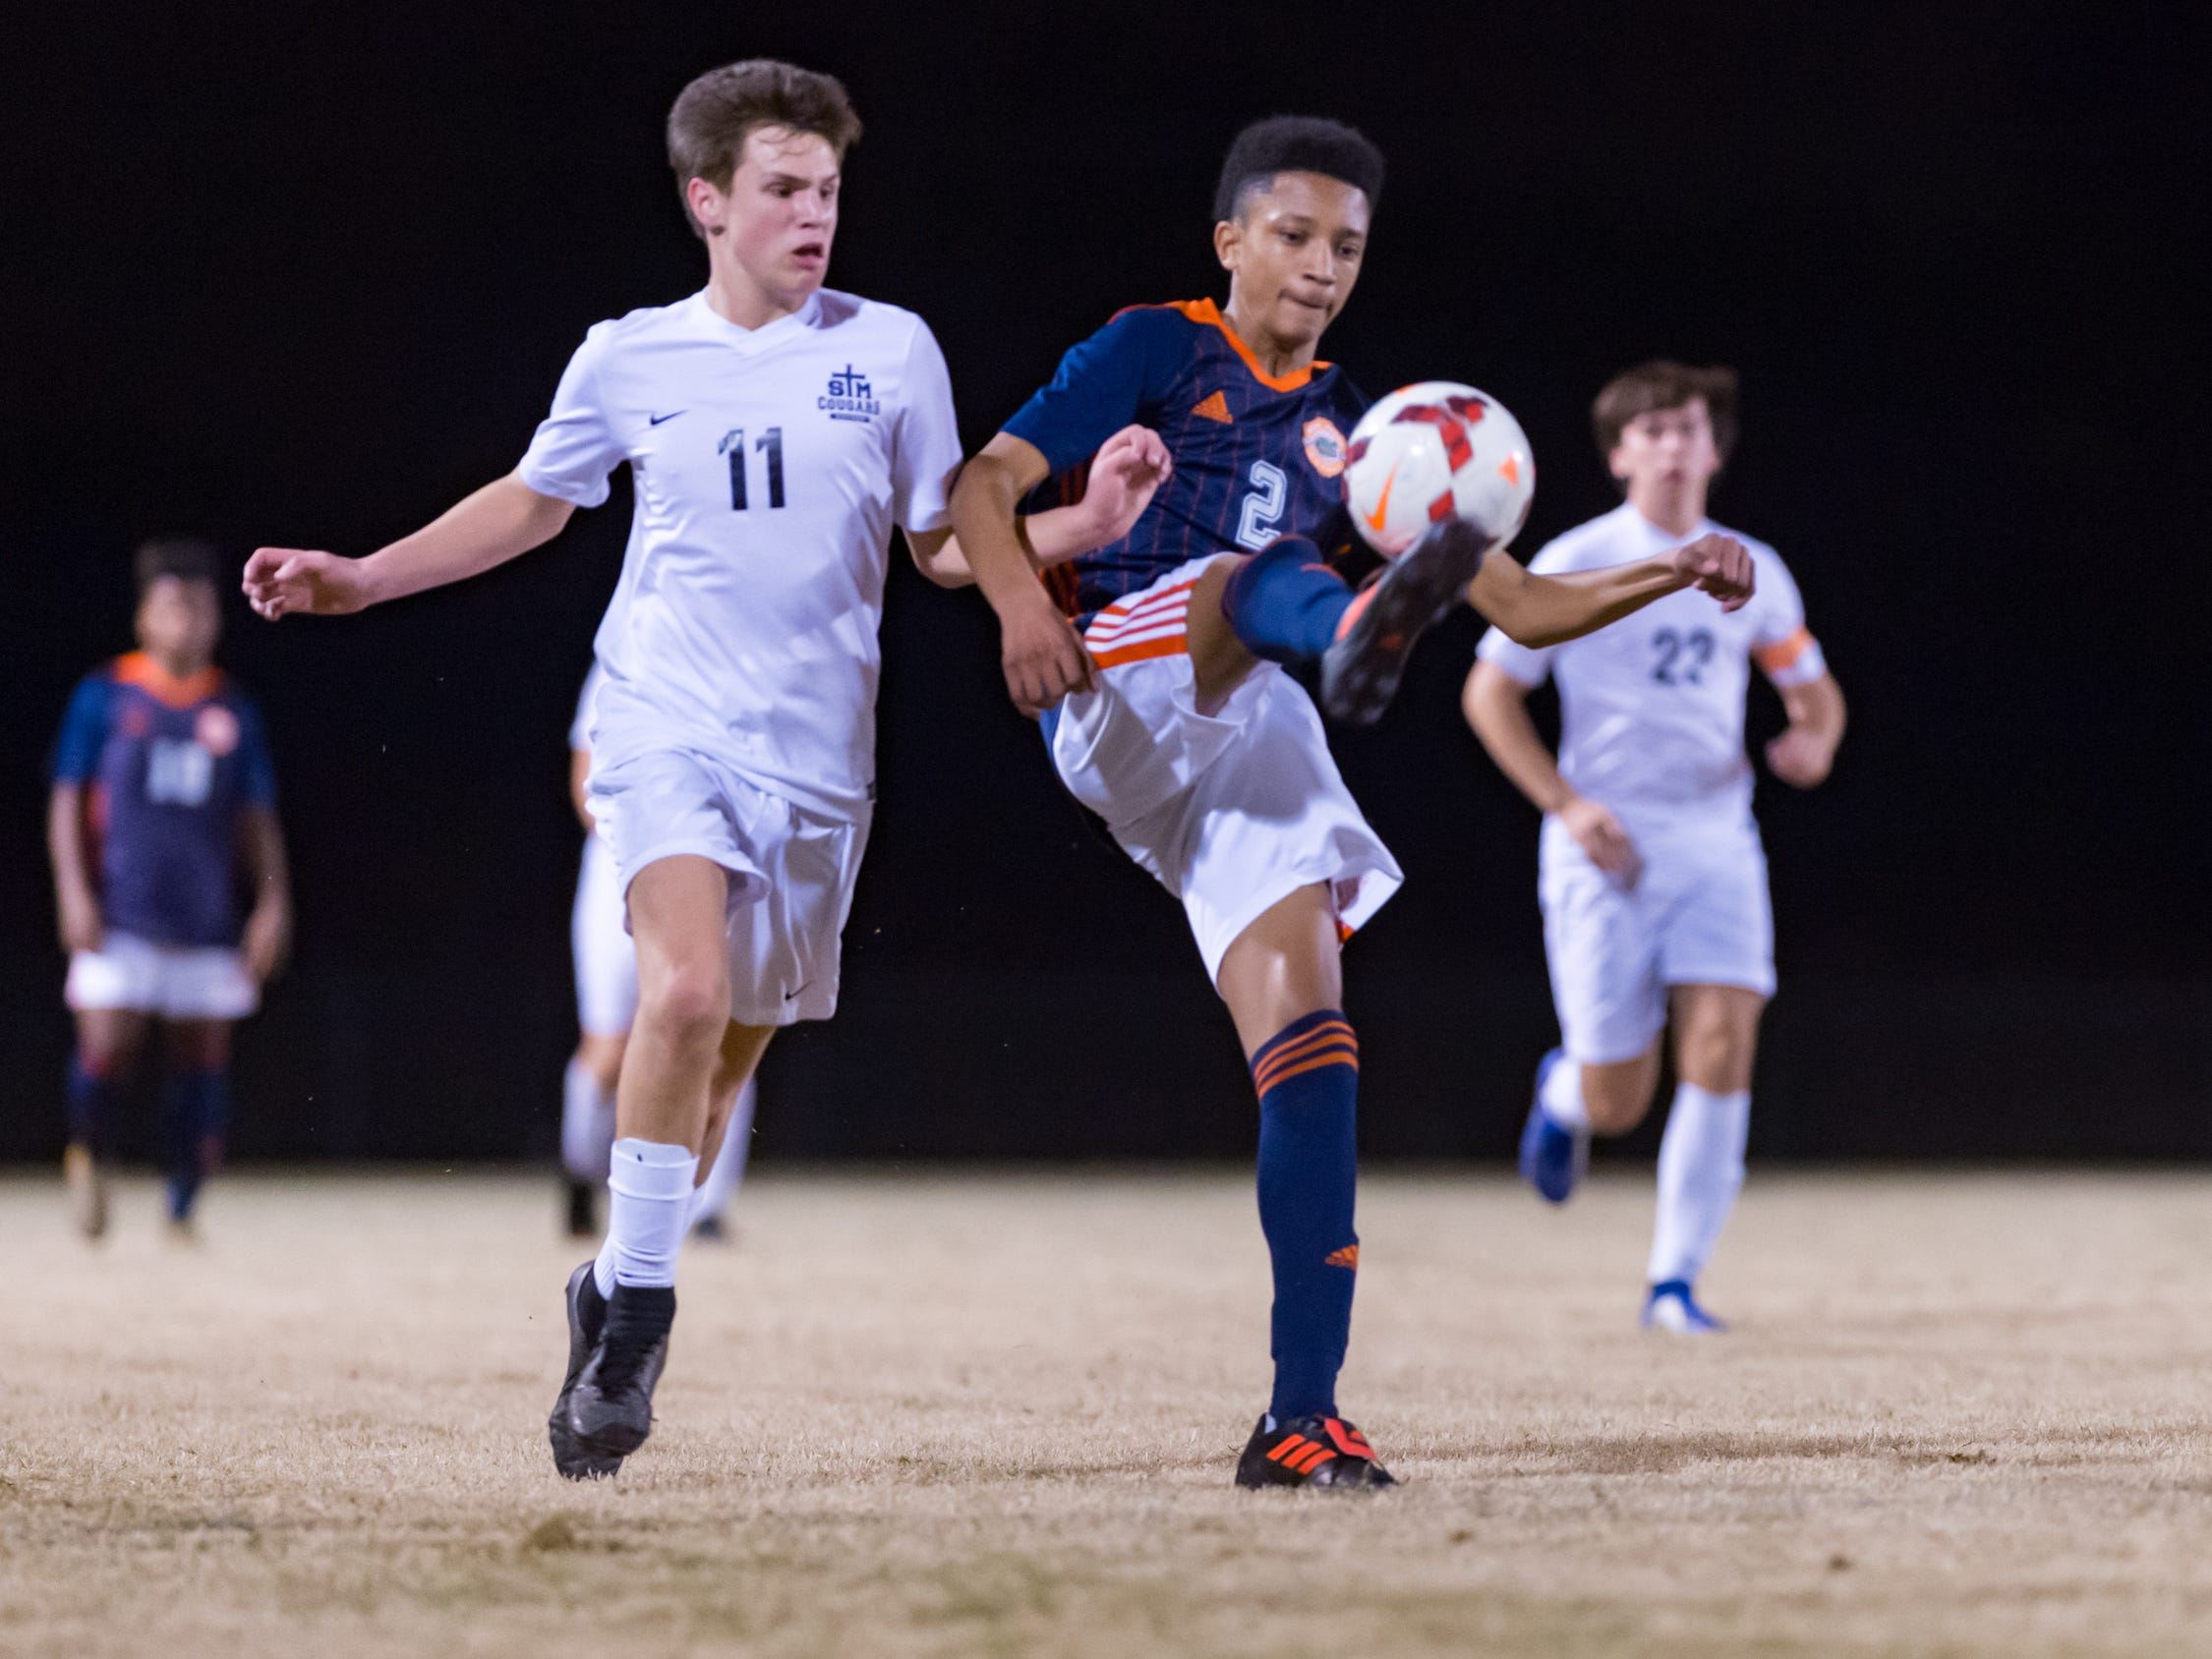 Devin Auzenne and Ethan Mowell battle for the ball as Beau Chene takes on STM in Boys soccer. Tuesday, Jan. 22, 2019.